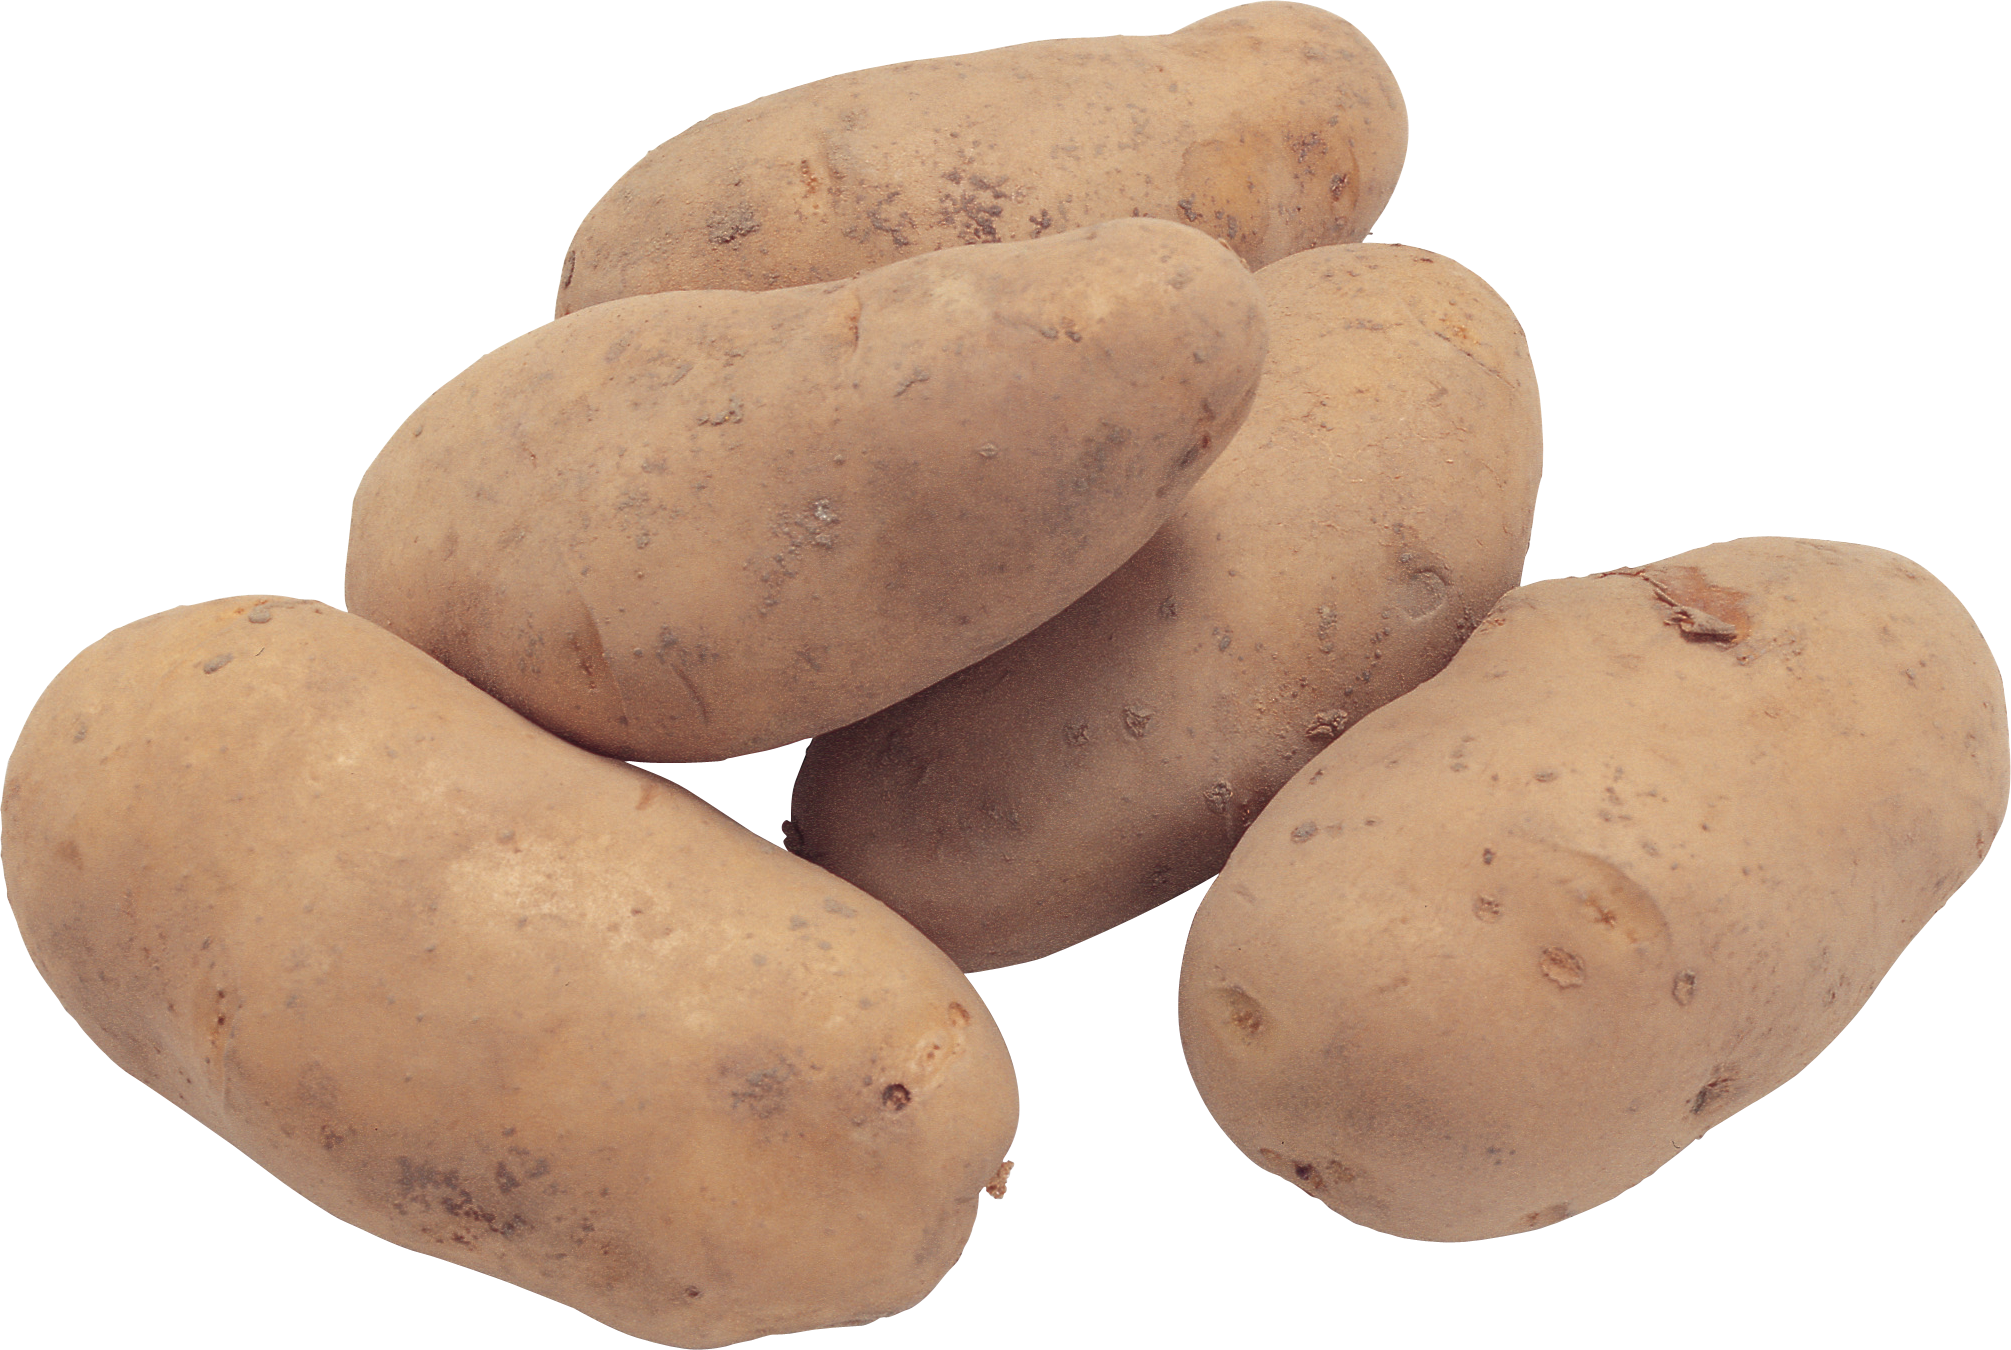 Png image free picture. Vegetables clipart potato